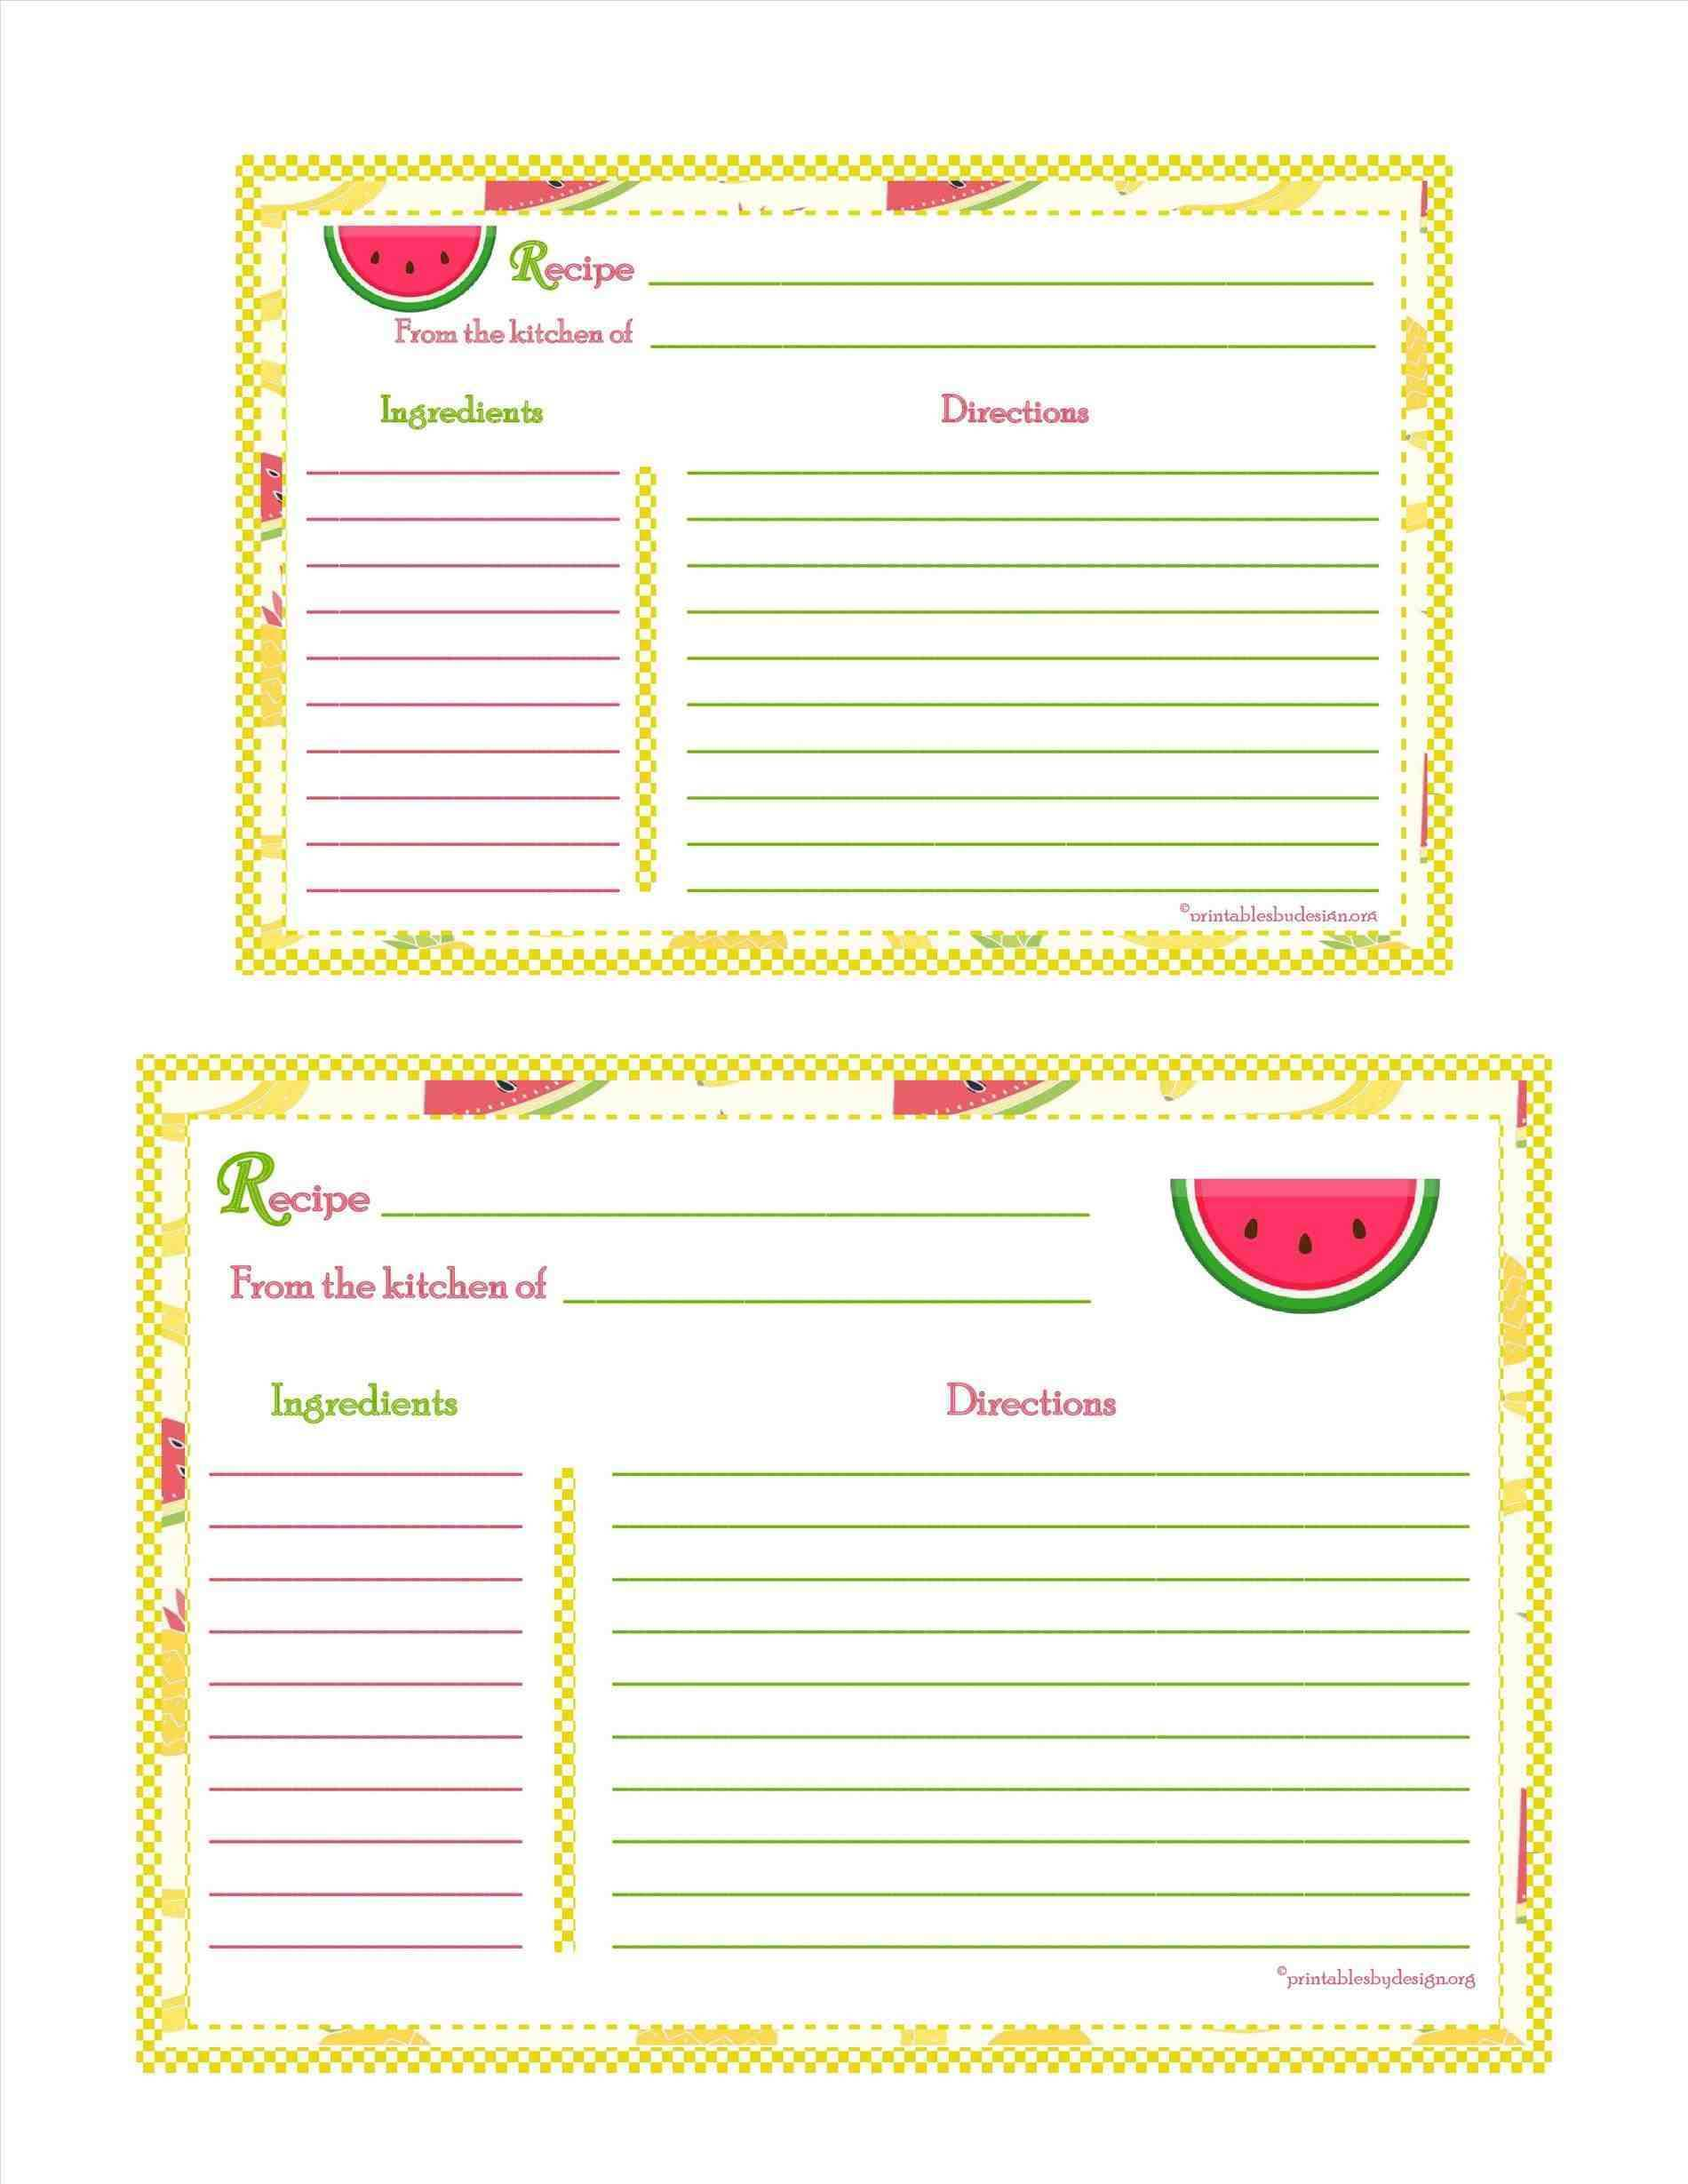 80 Adding Blank 3X5 Card Template Download with Blank 3X5 Card Template